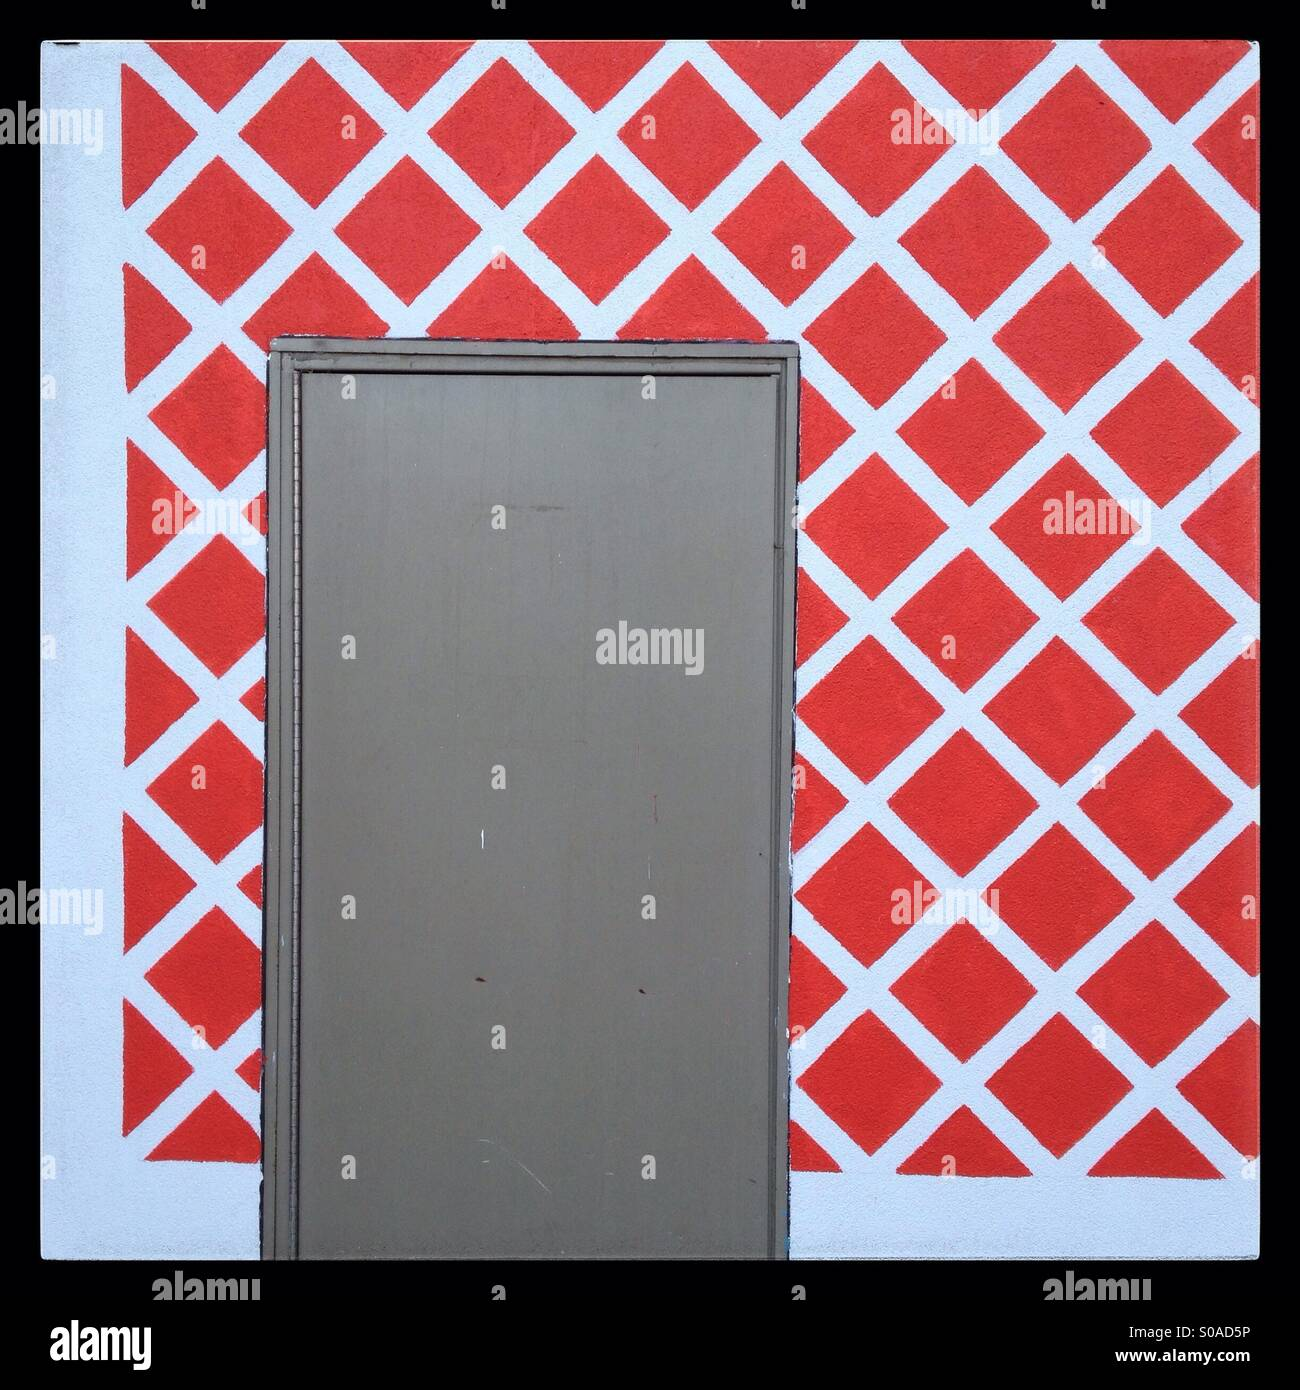 Service door in a wall painted in a red and white criss